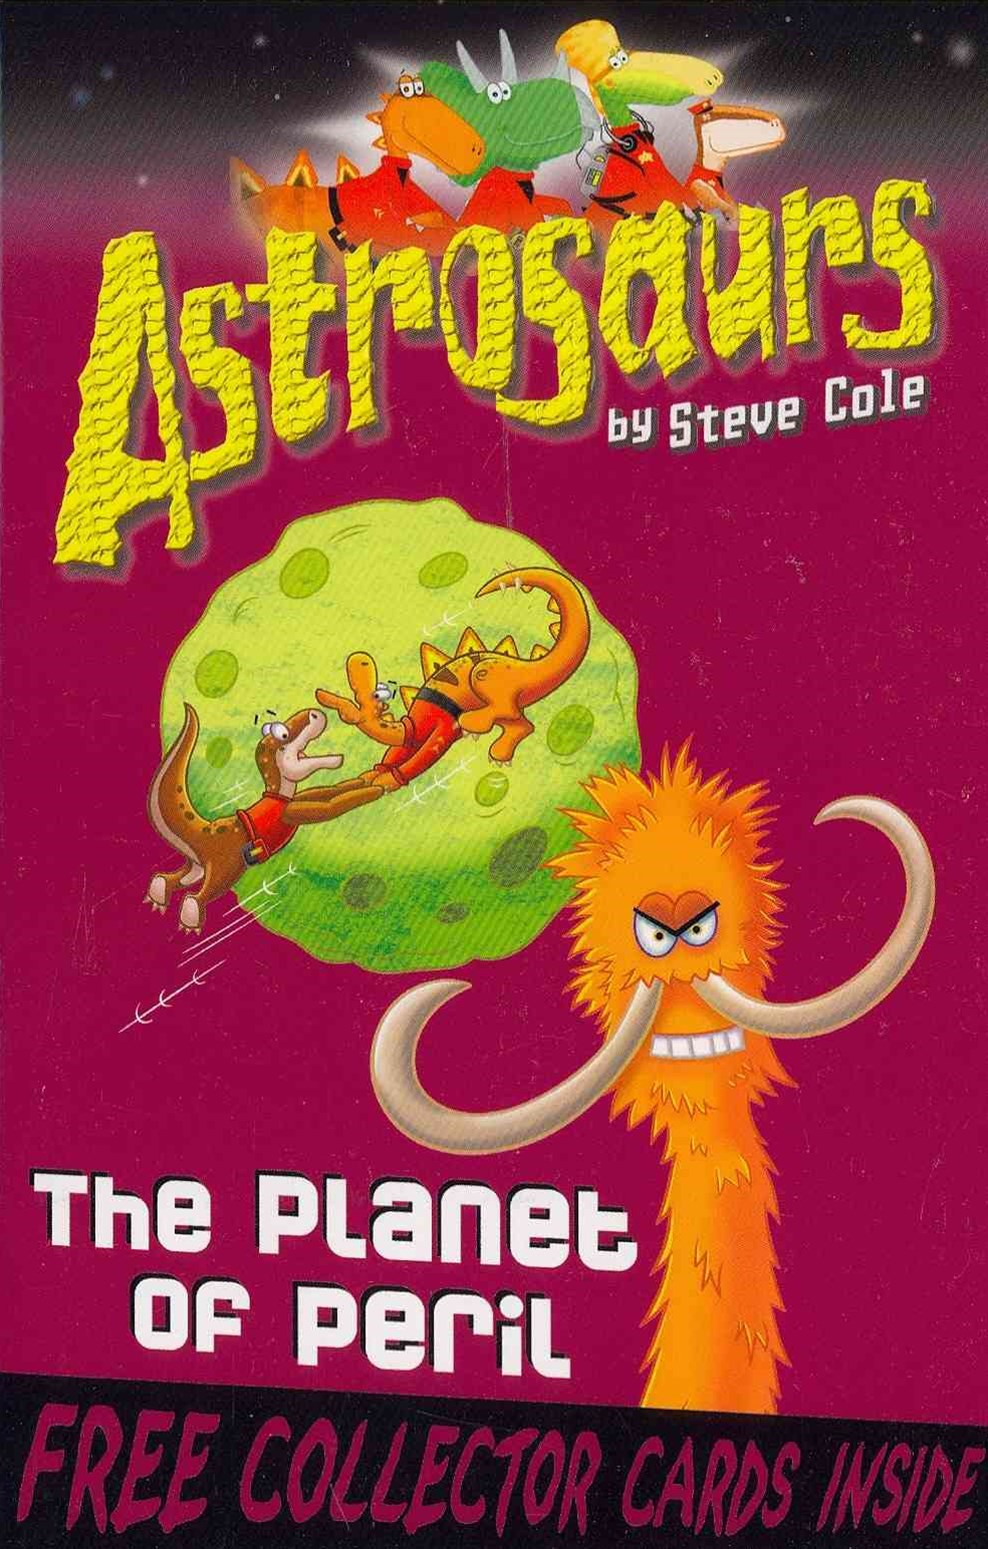 The Astrosaurs 9: Planet of Peril